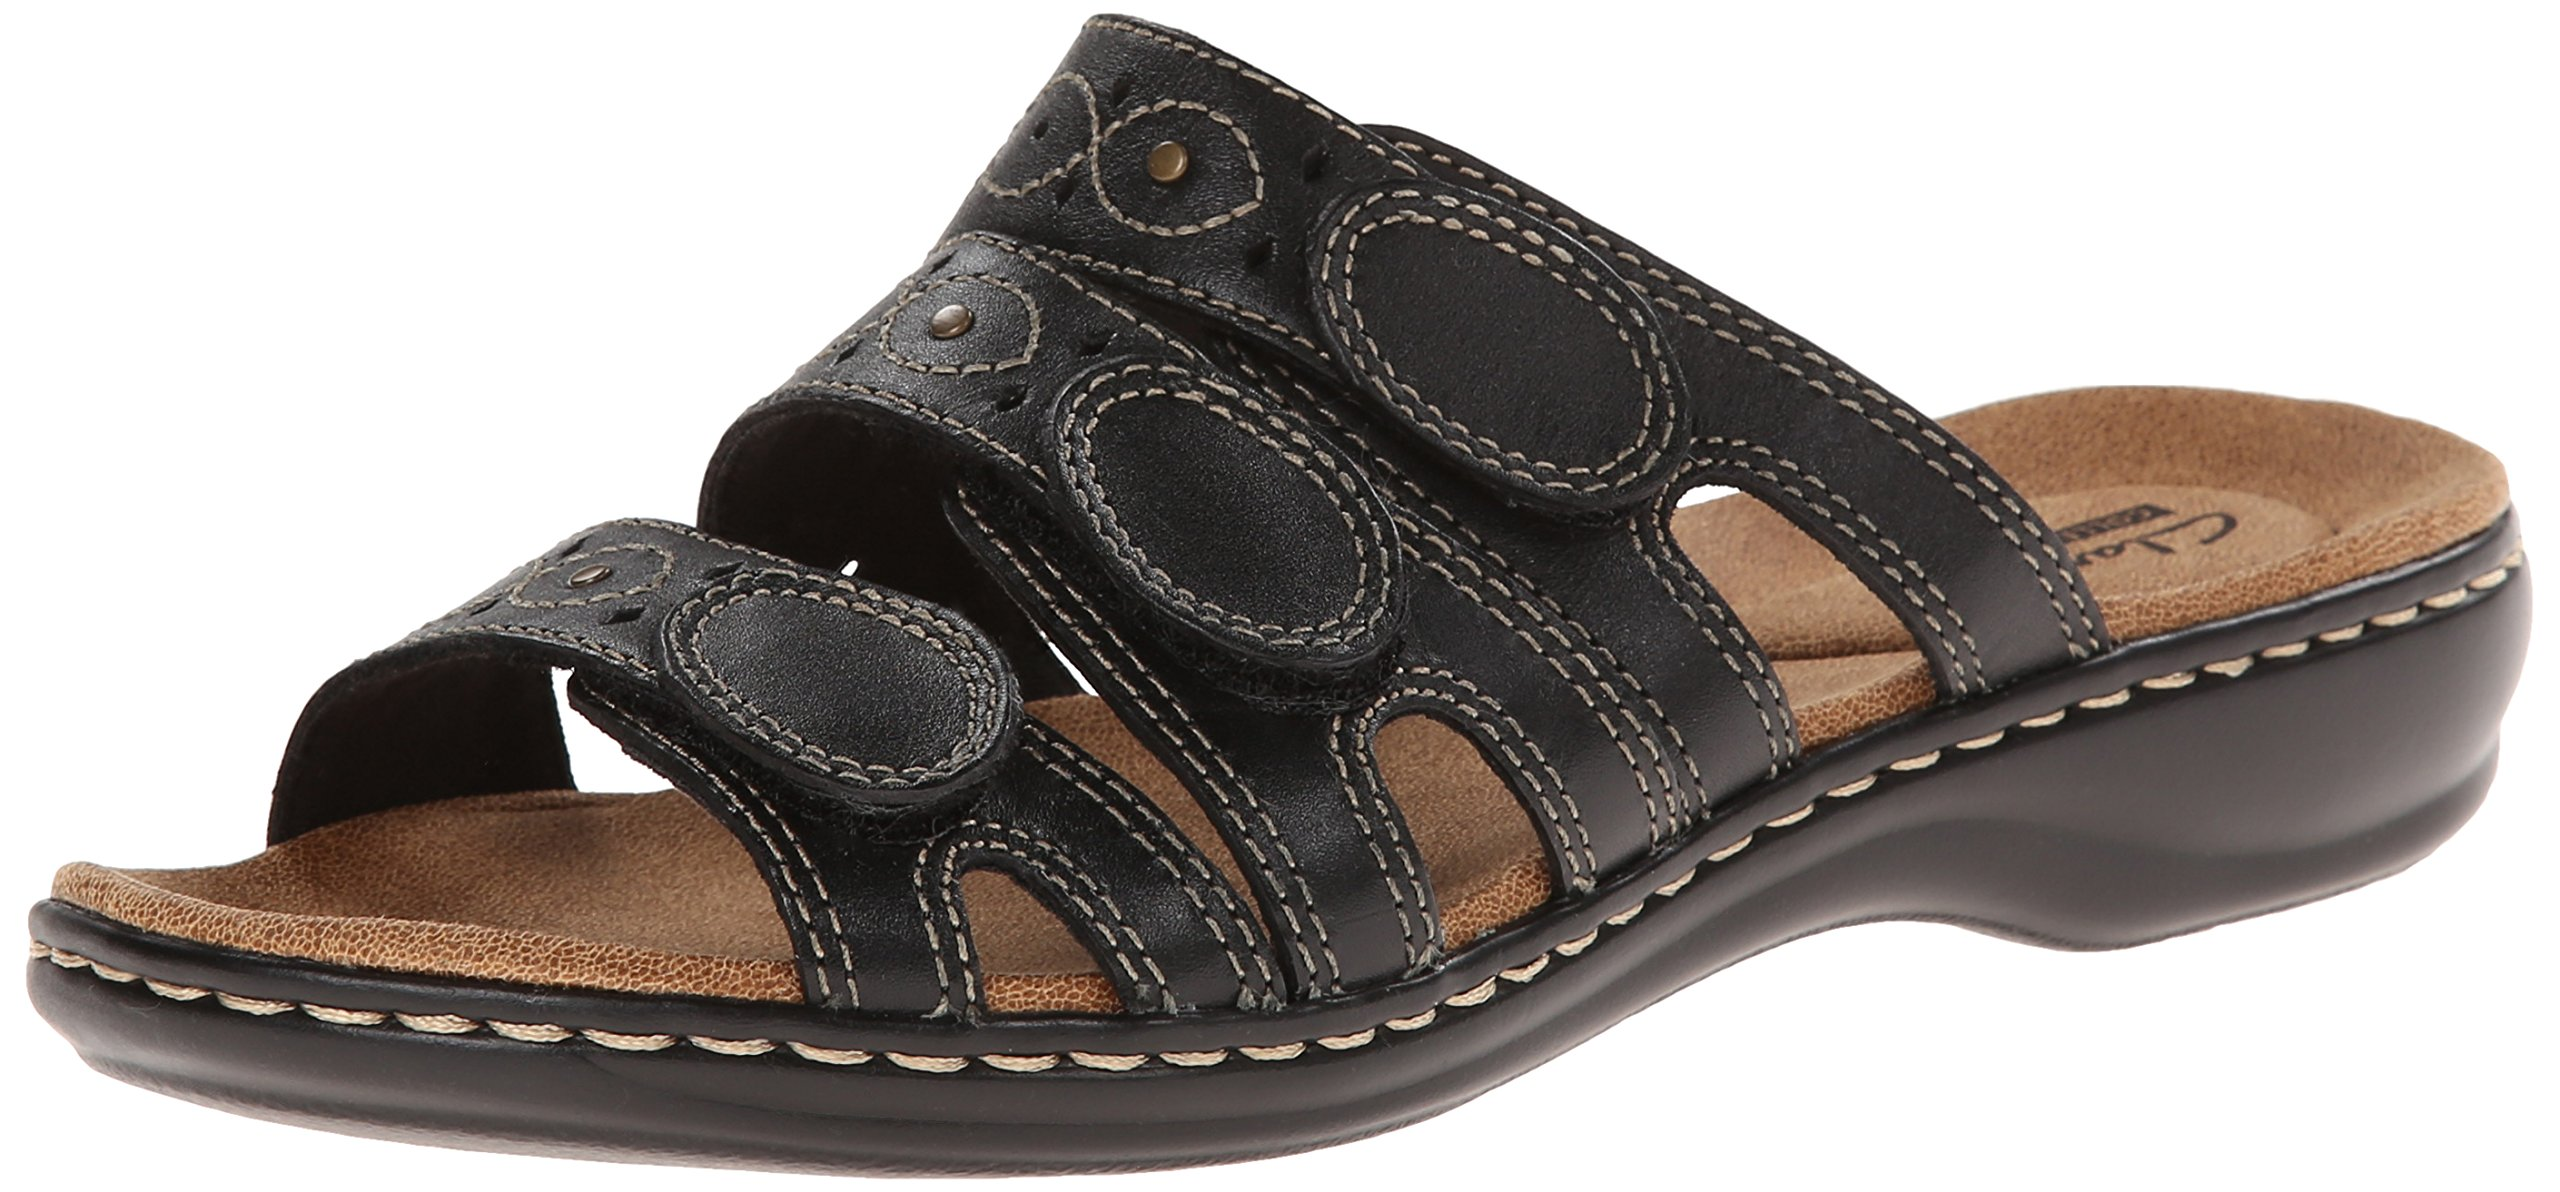 CLARKS Women's Leisa Cacti Slide Sandal, Black Leather, 8.5 M US